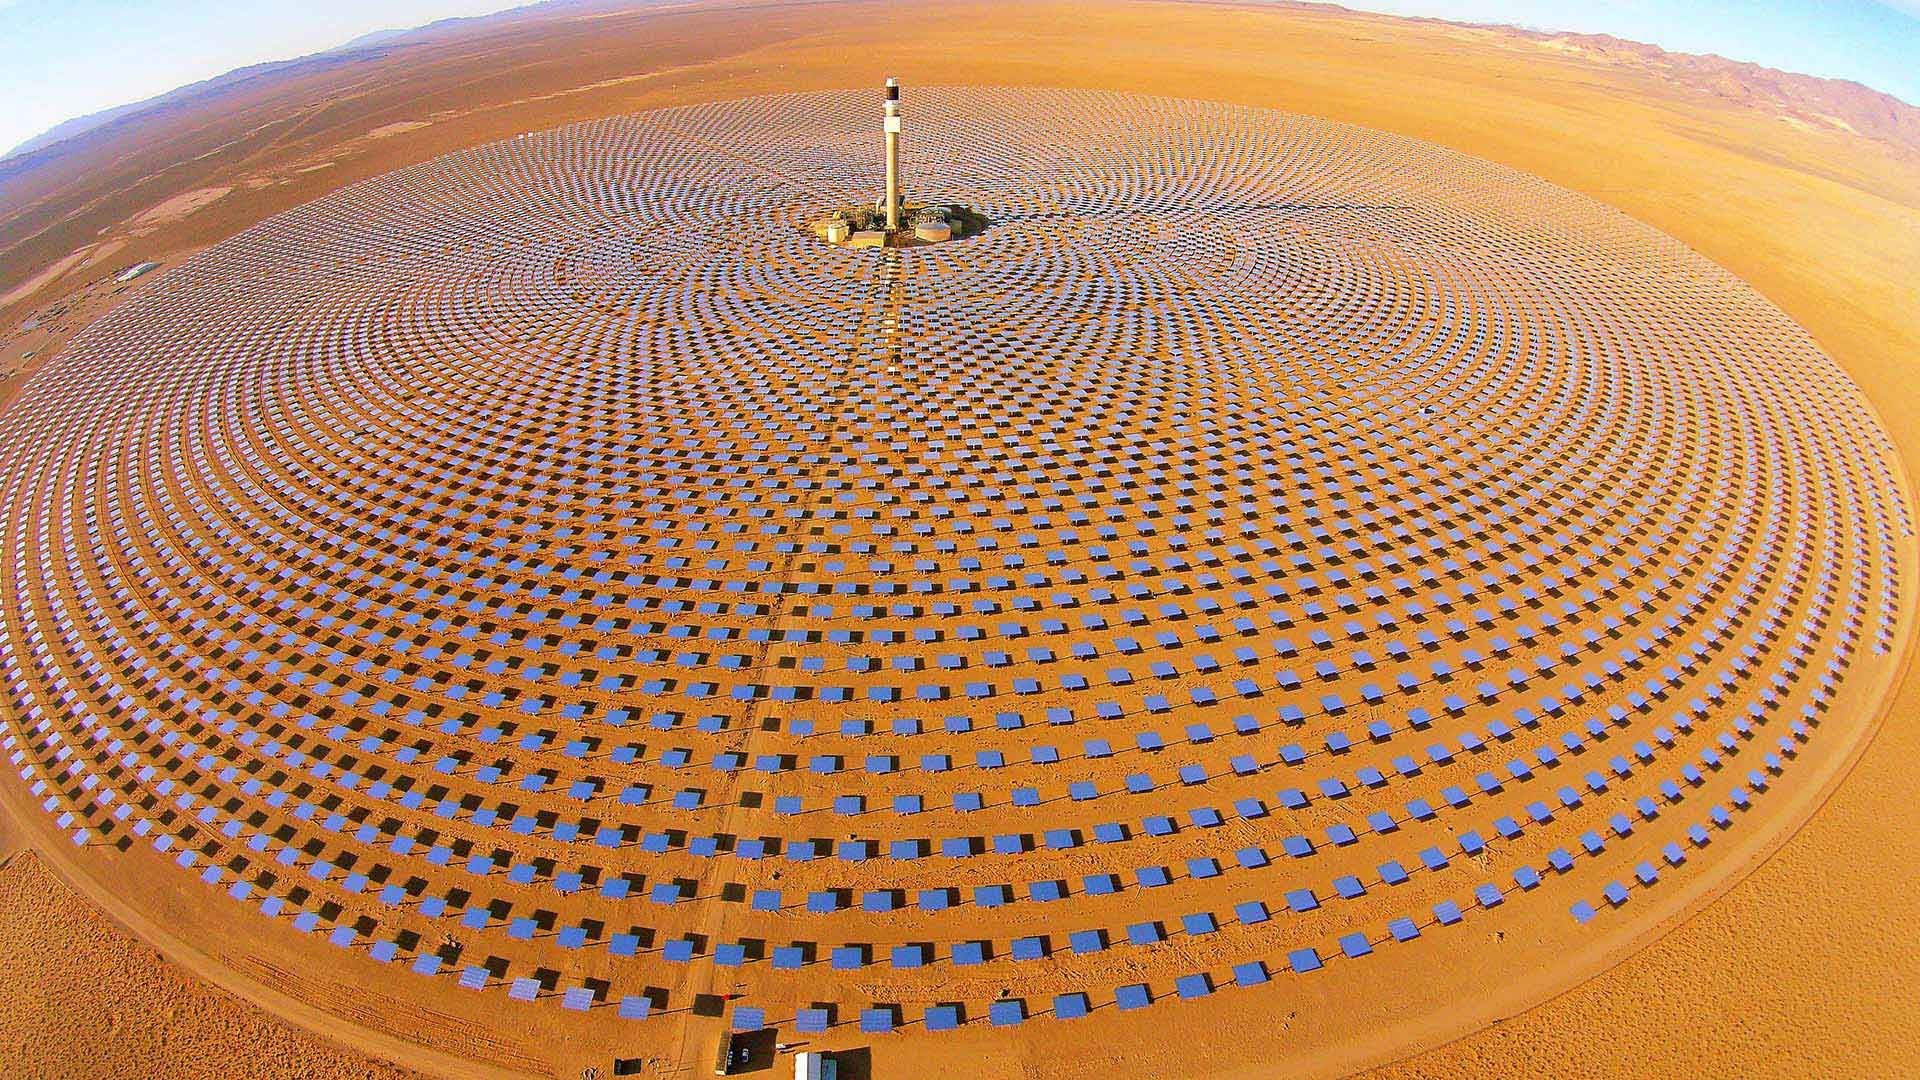 Thermal solar plant Tonopah